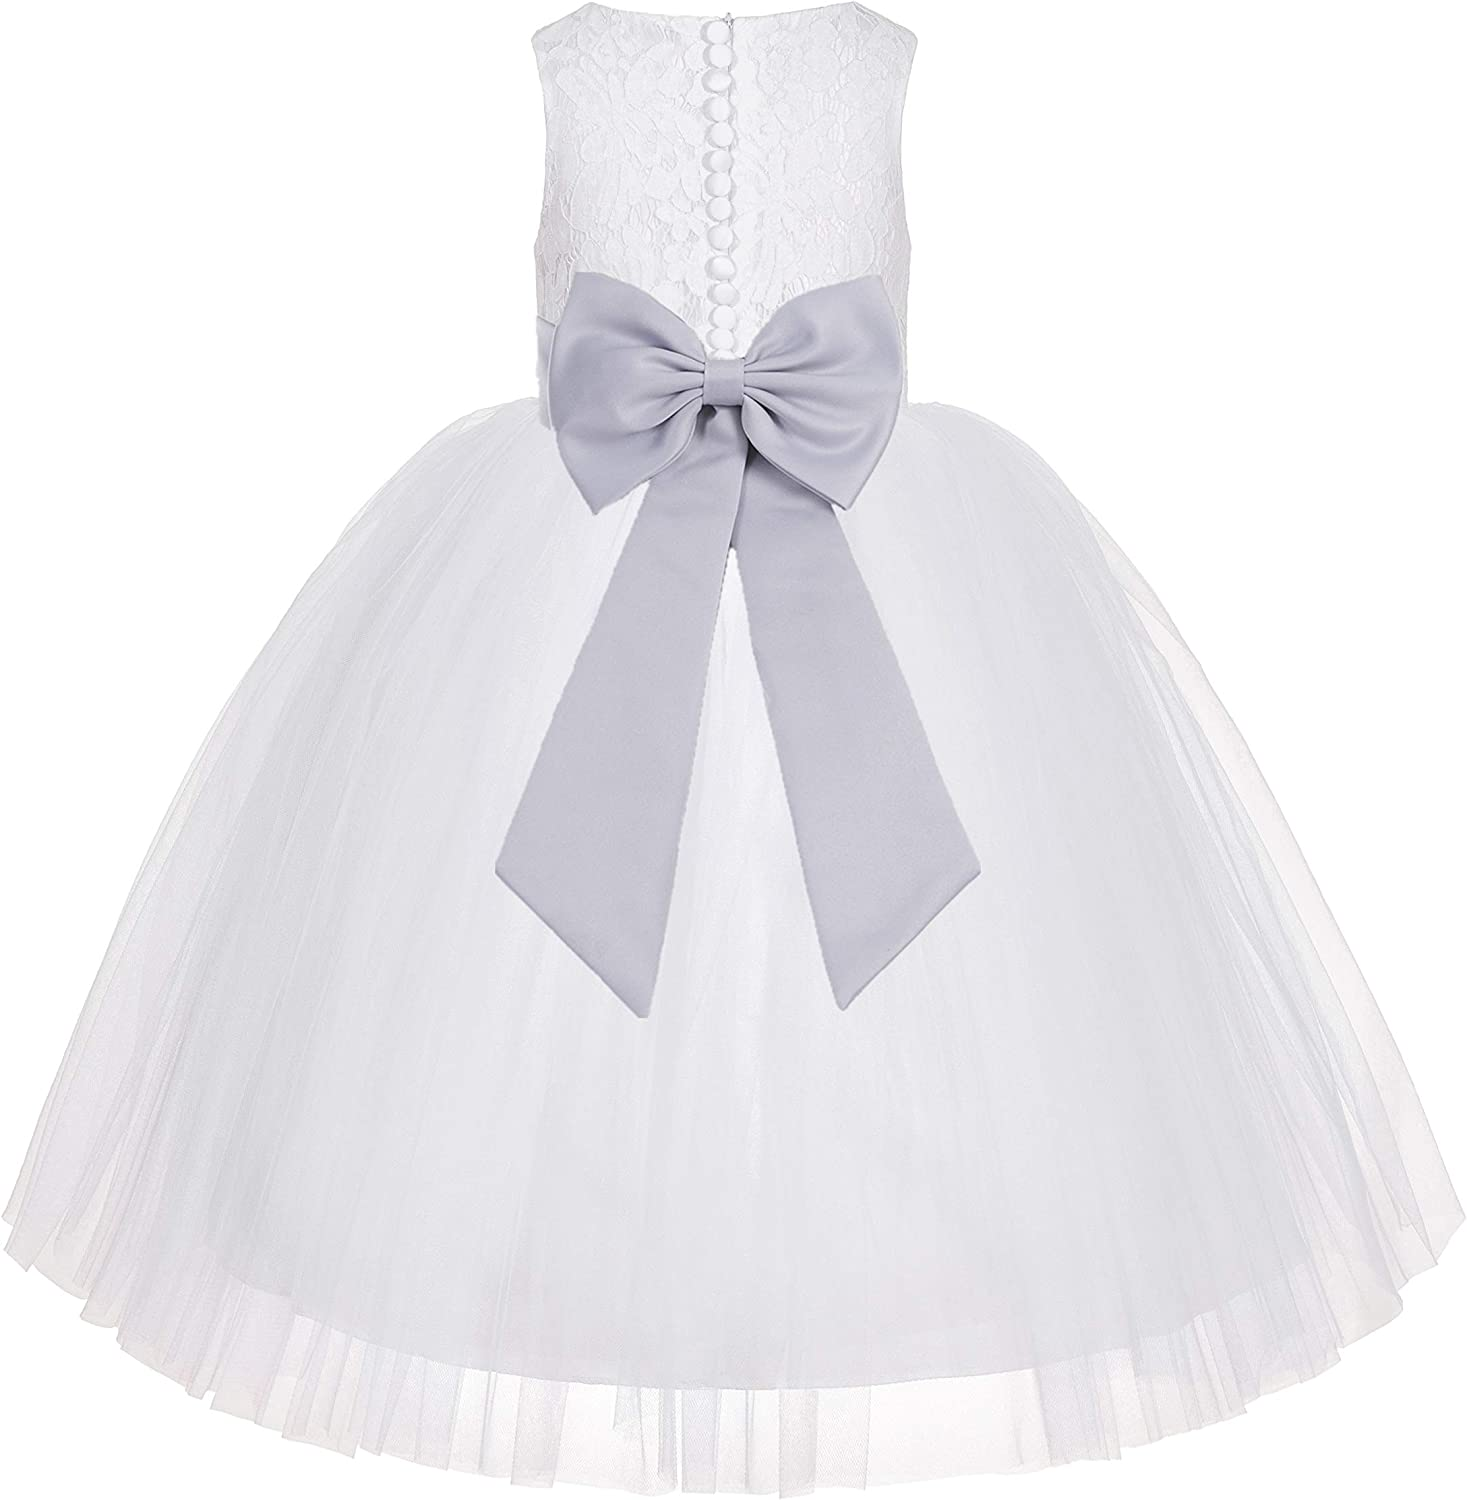 White Floral Lace Flower Girl Dress Beauty Pageant Gown Formal Princess LG7